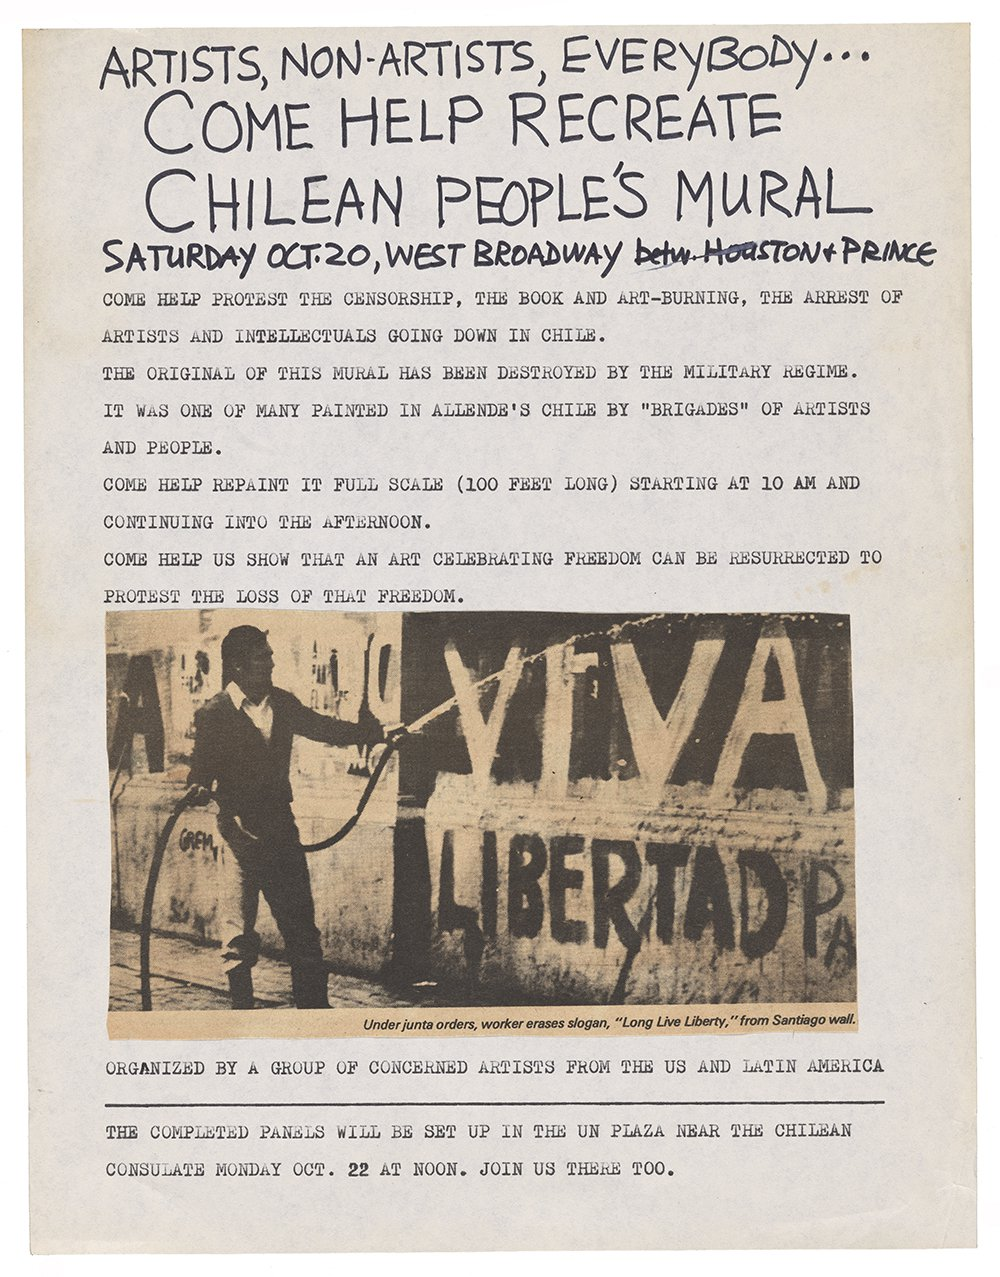 Poster advertising the first of a two-part art action in New York protesting the Chilean coup in 1973